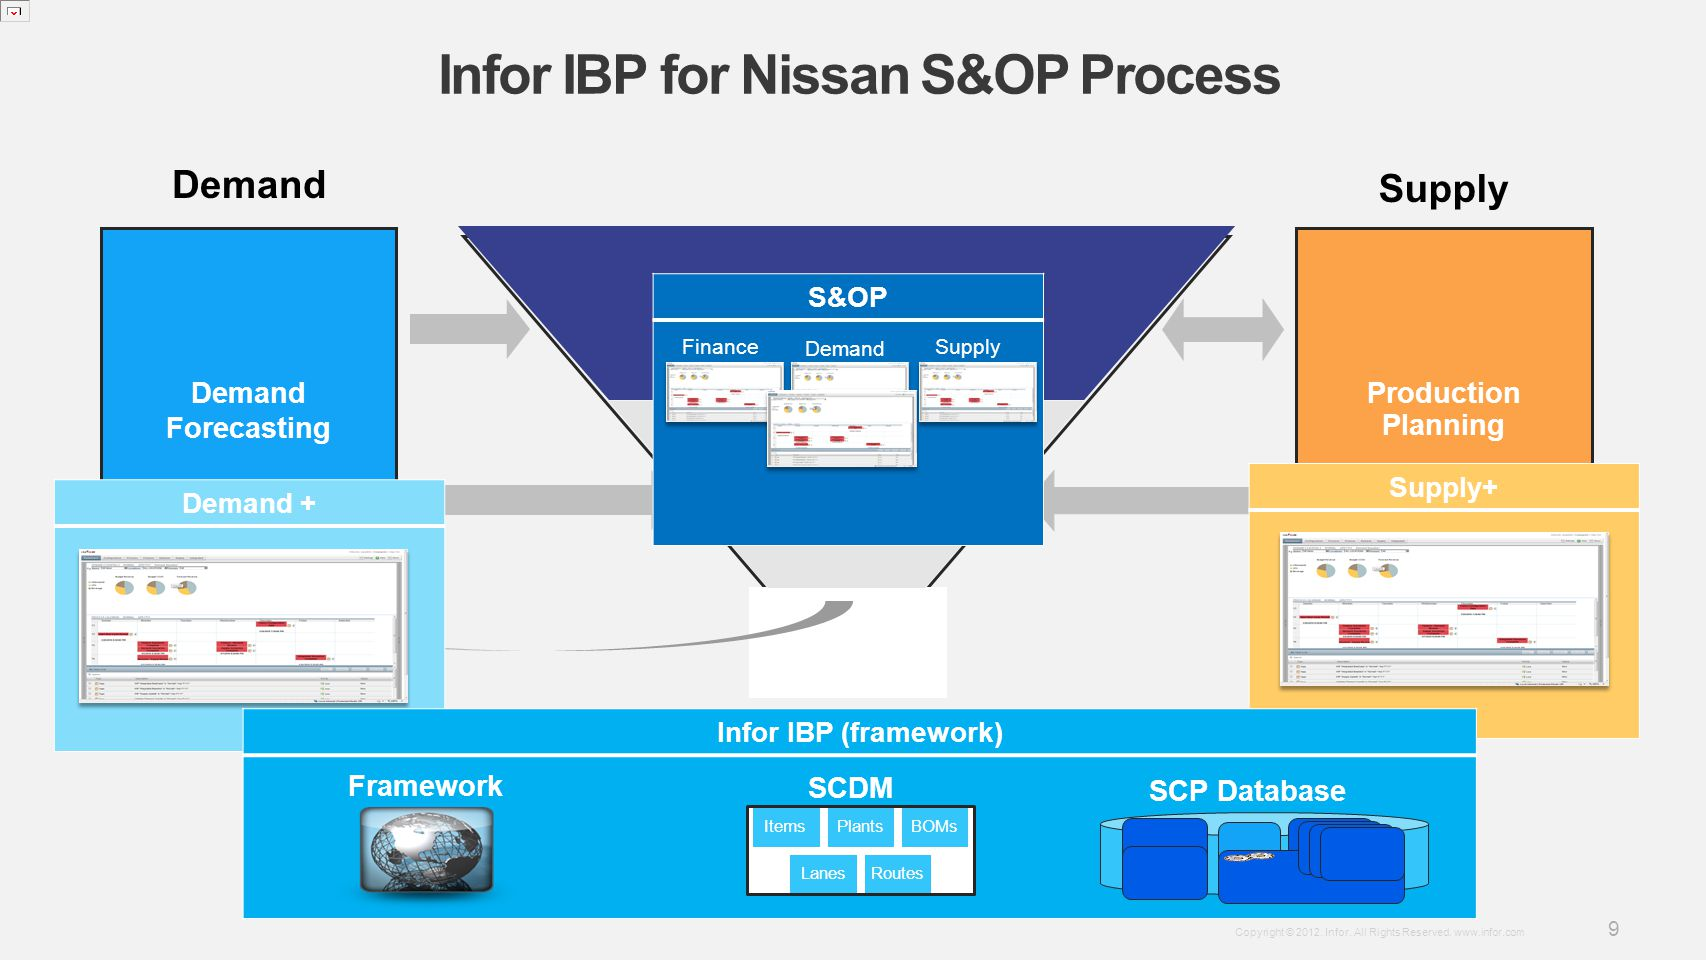 Infor IBP for Nissan S&OP Process